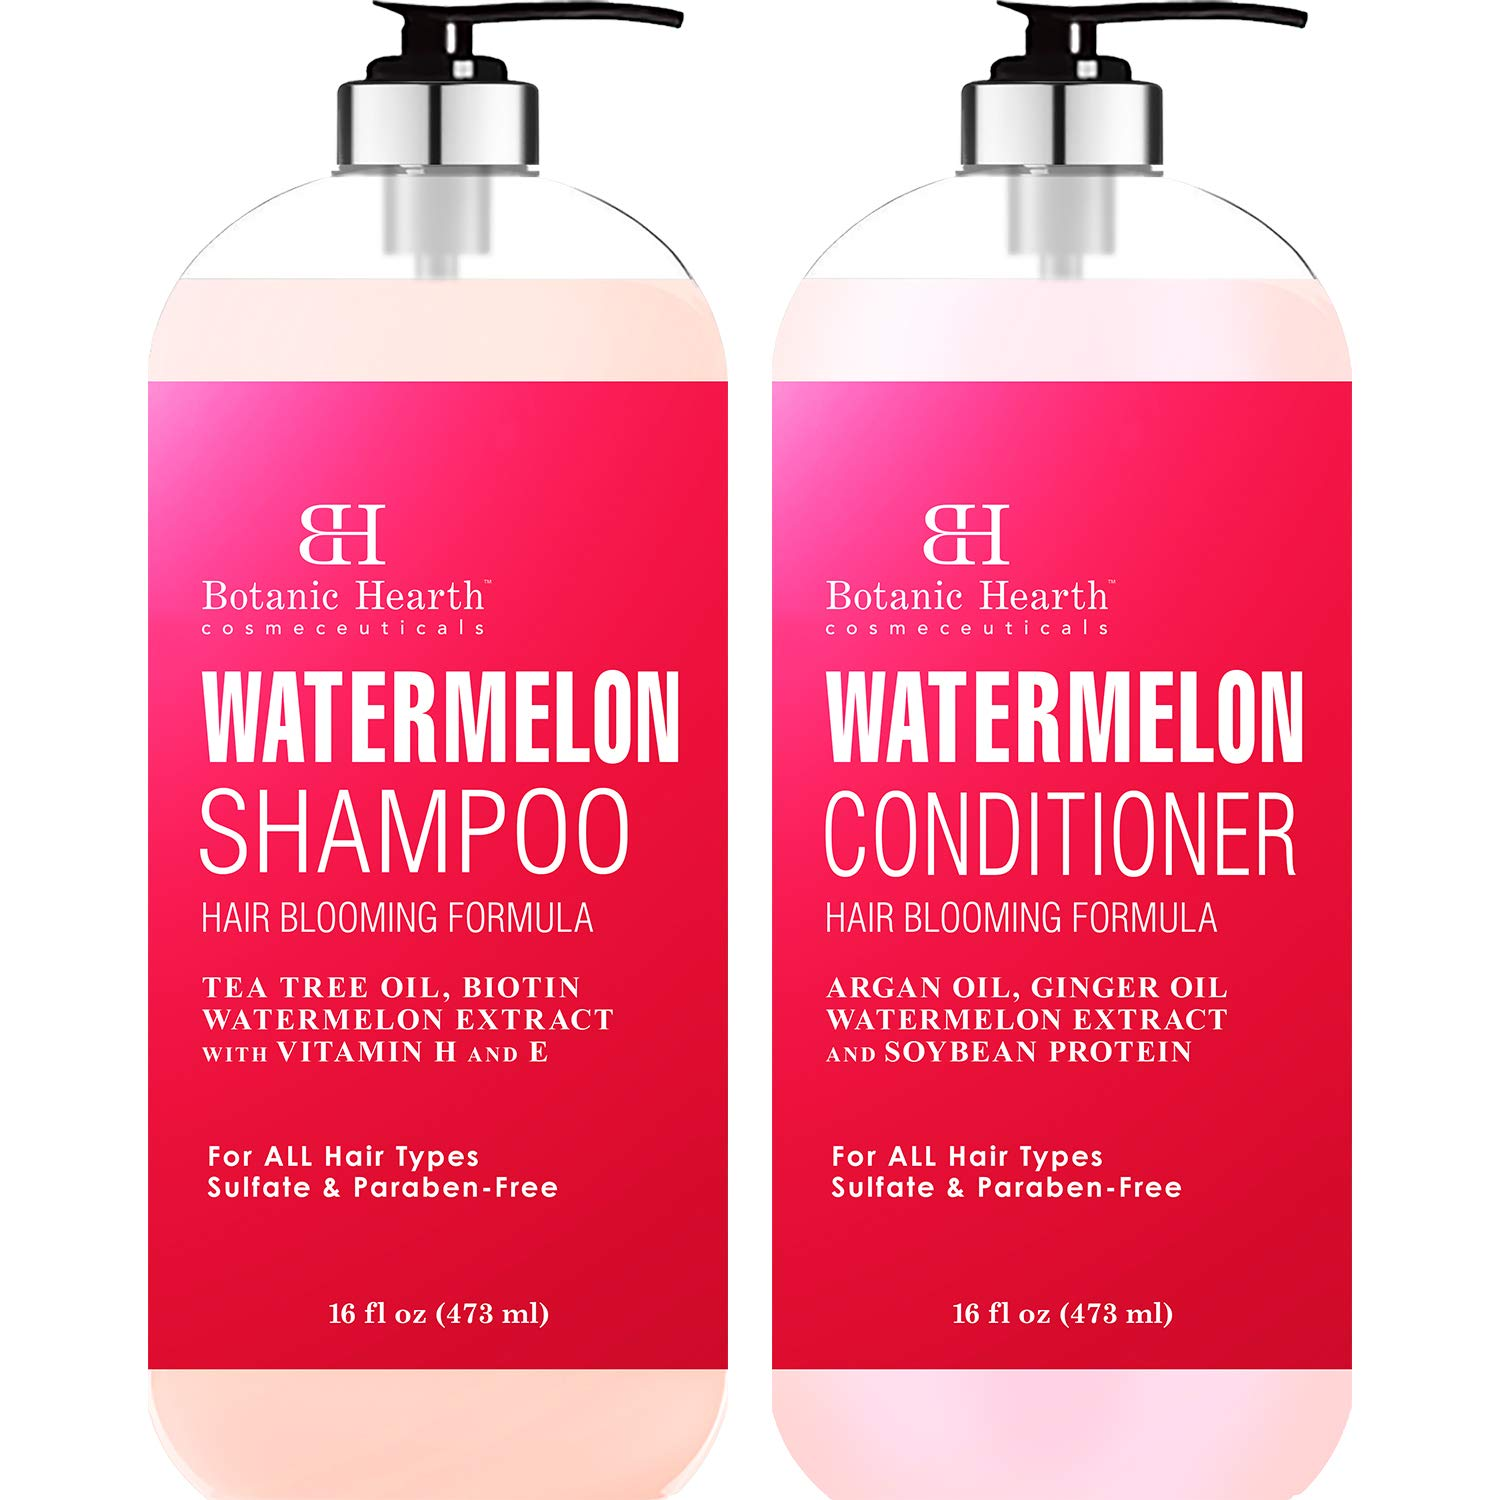 BOTANIC HEARTH Watermelon Shampoo and Conditioner Set - Promotes Hair Growth, Fights Hair Loss, Moisturizes, Sulfate & Paraben Free - for ALL Hair Types, for Men and Women - 16 fl oz x 2